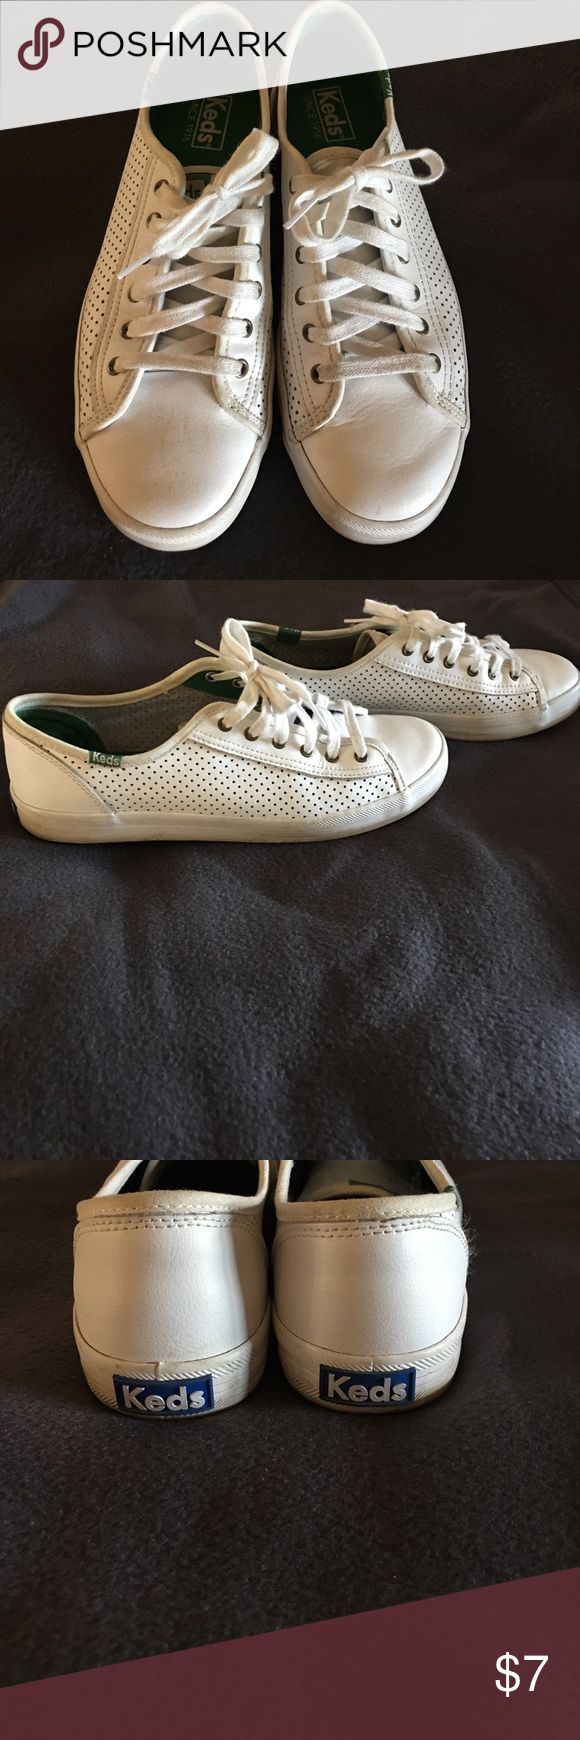 White Leather Keds White Leather Keds- Great condition perfect for summer. Very comfortable Keds Shoes Sneakers